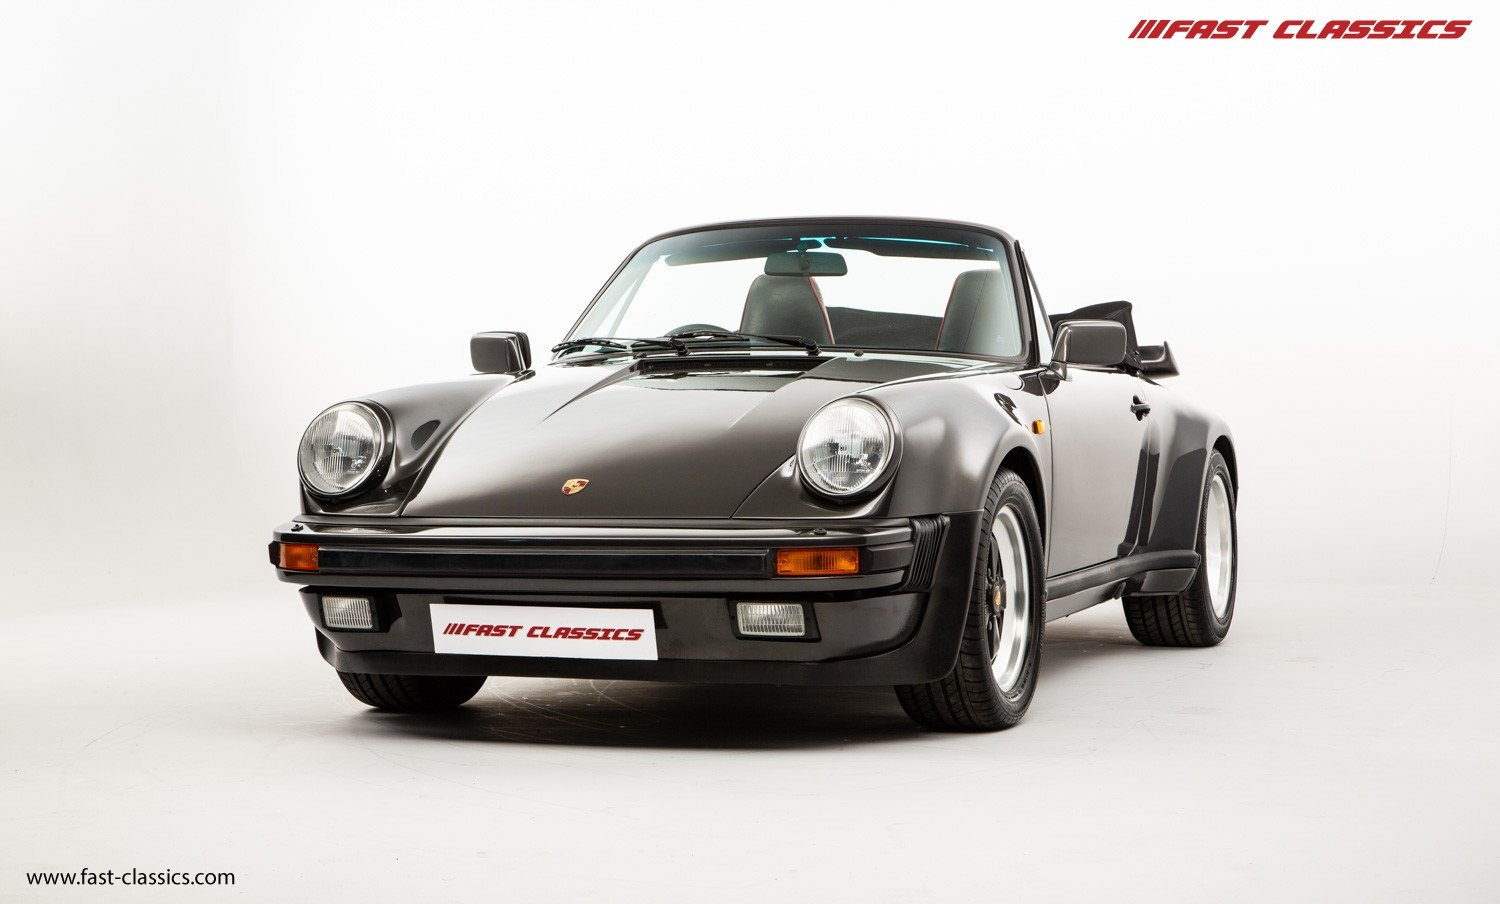 1990 PORSCHE 911 TURBO CABR // SLATE GREY // G50 GEARBOX  For Sale (picture 2 of 6)